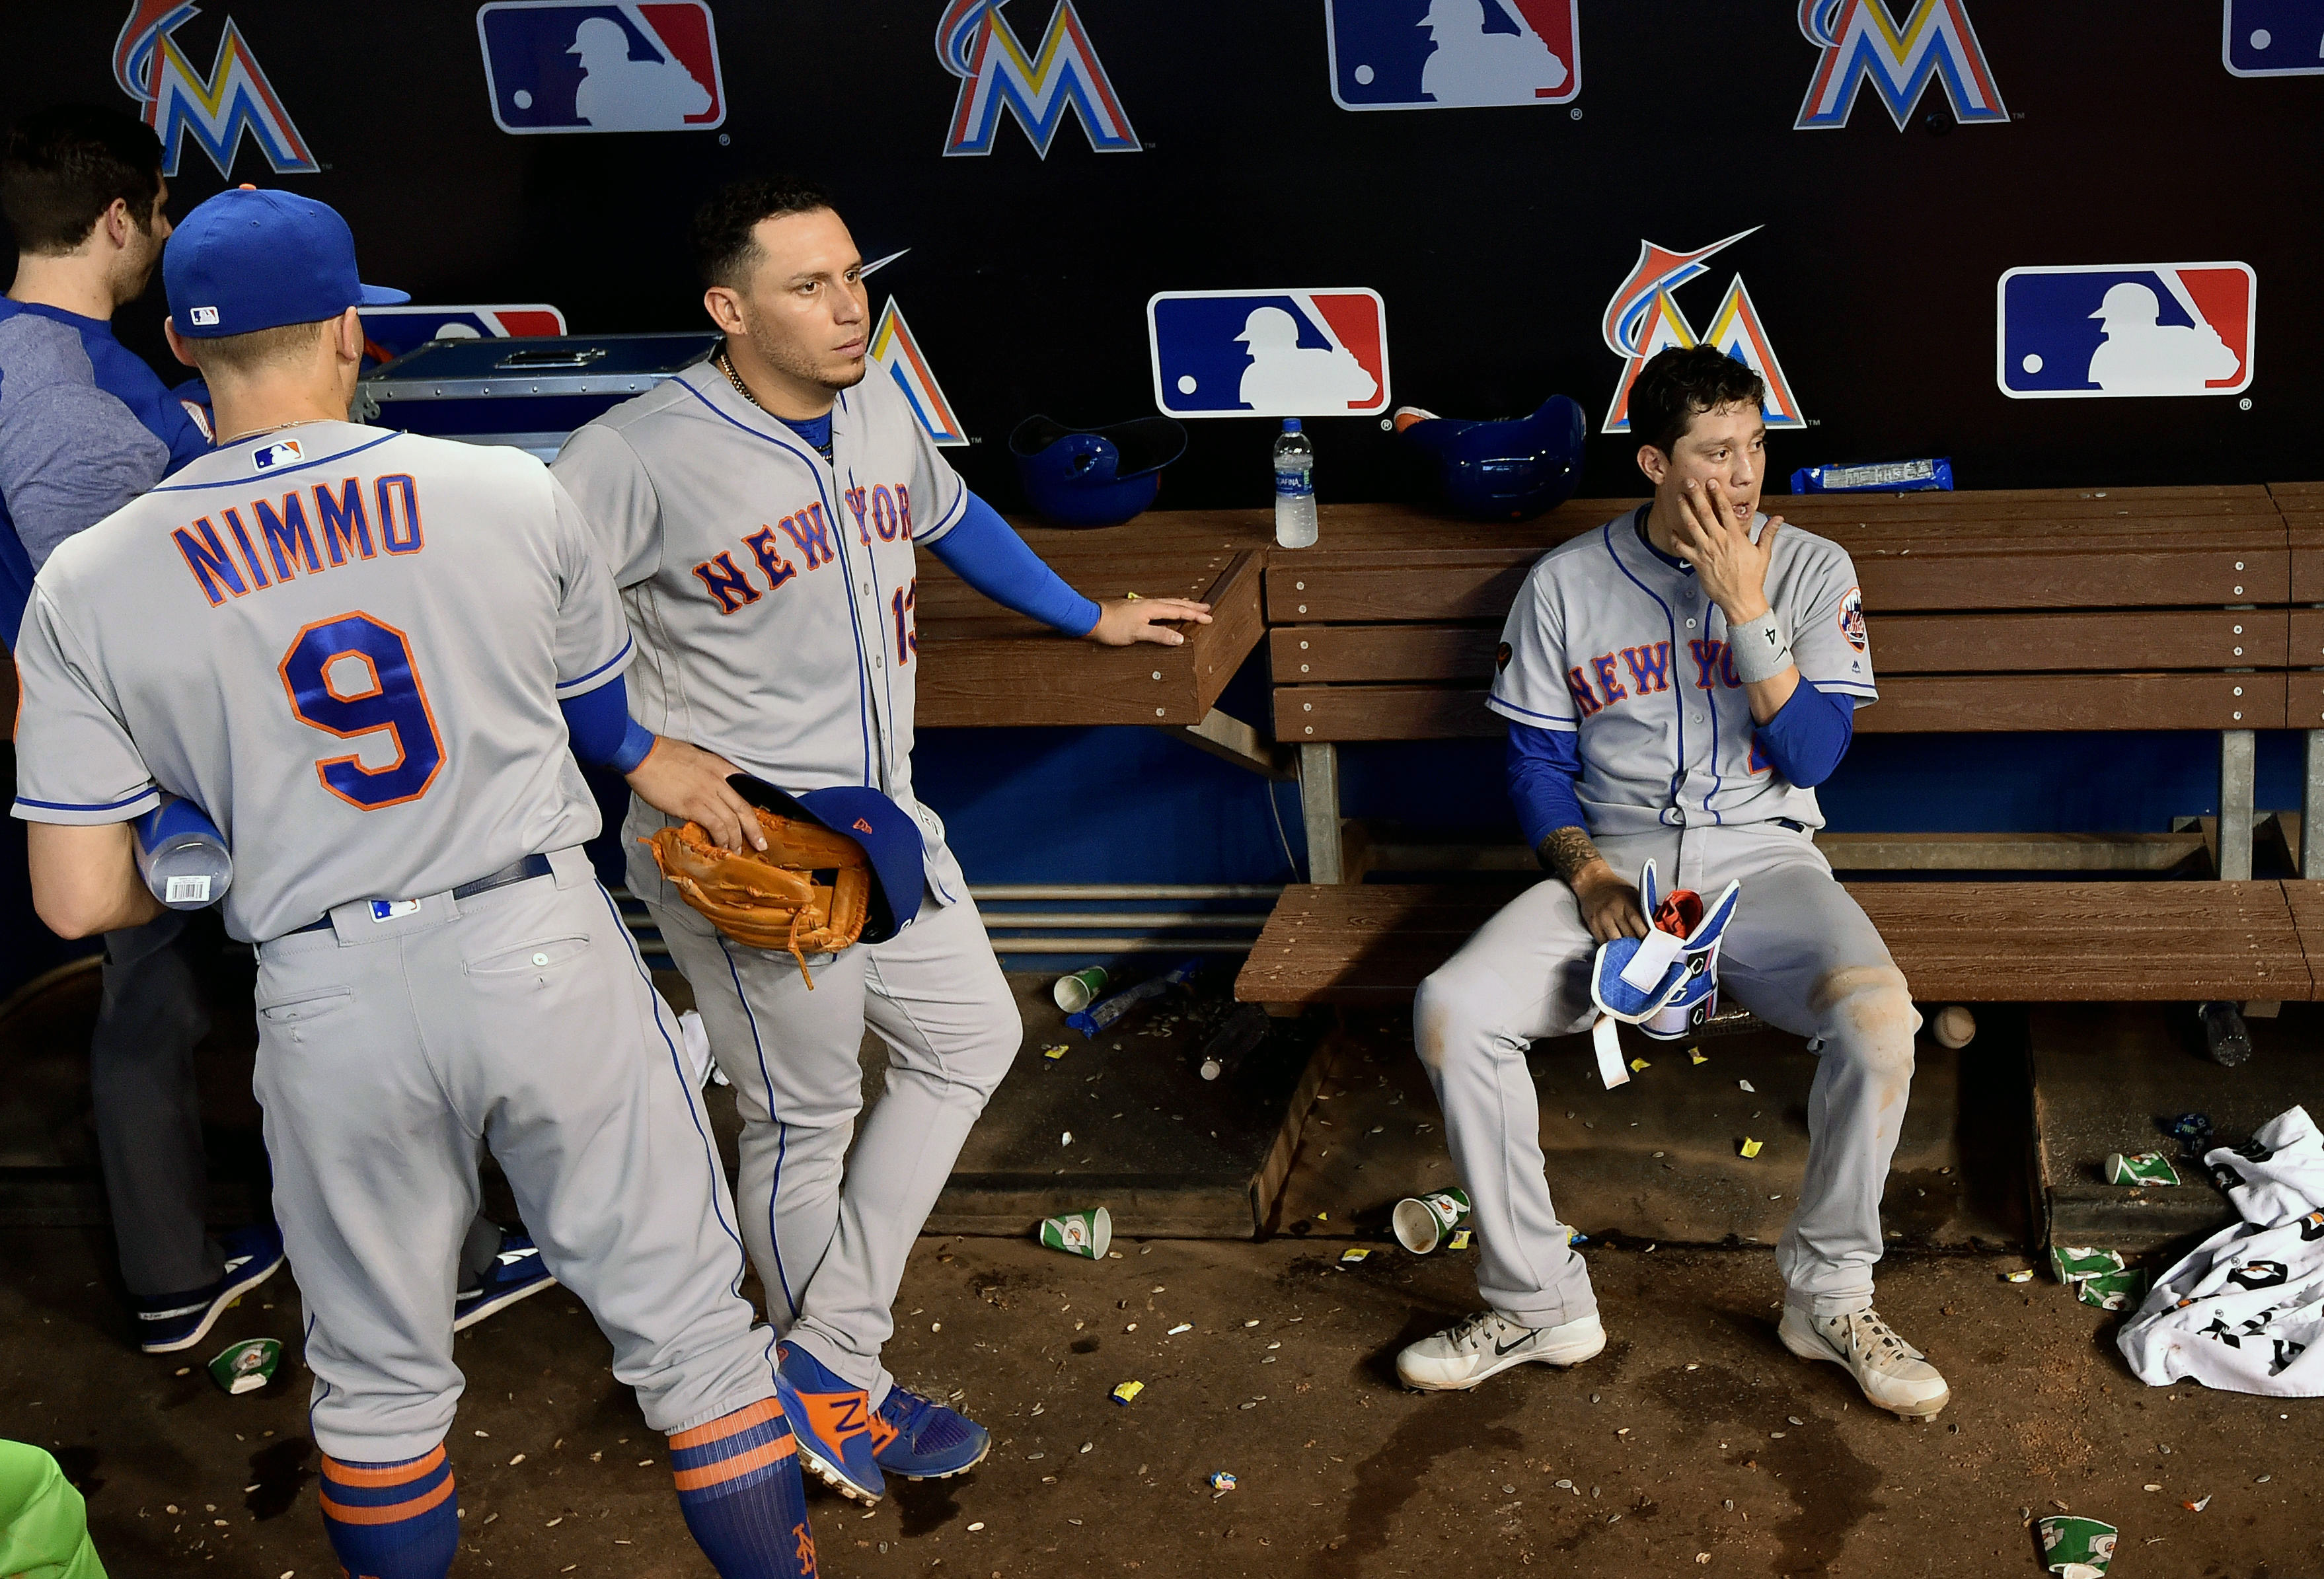 New York Mets Complete Historically Bad June To Become Worst Team In National League